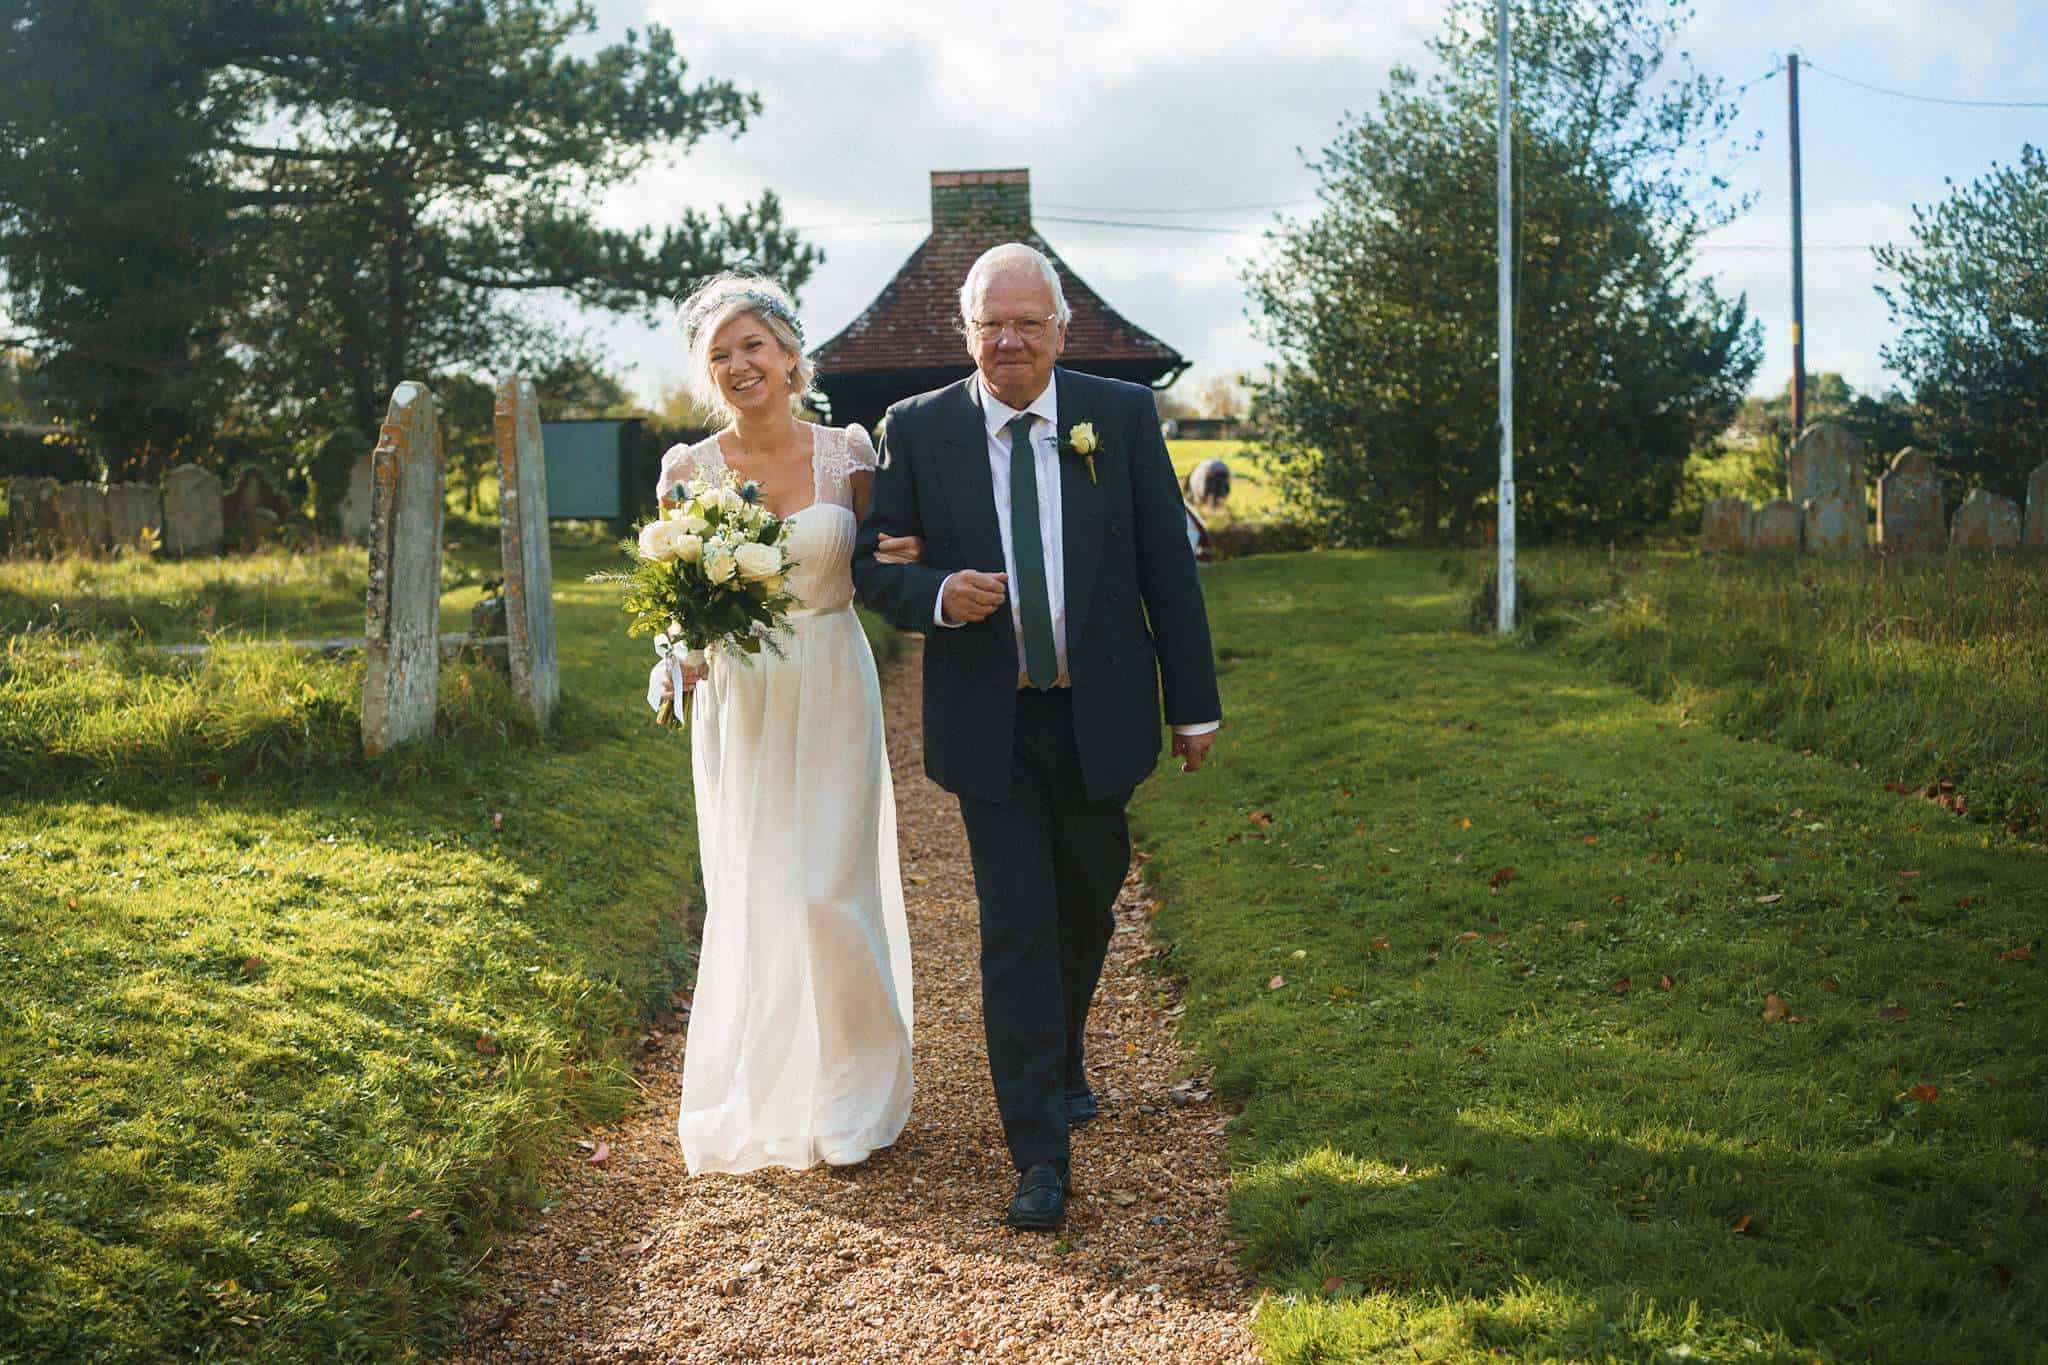 A bride arriving at the church with her father